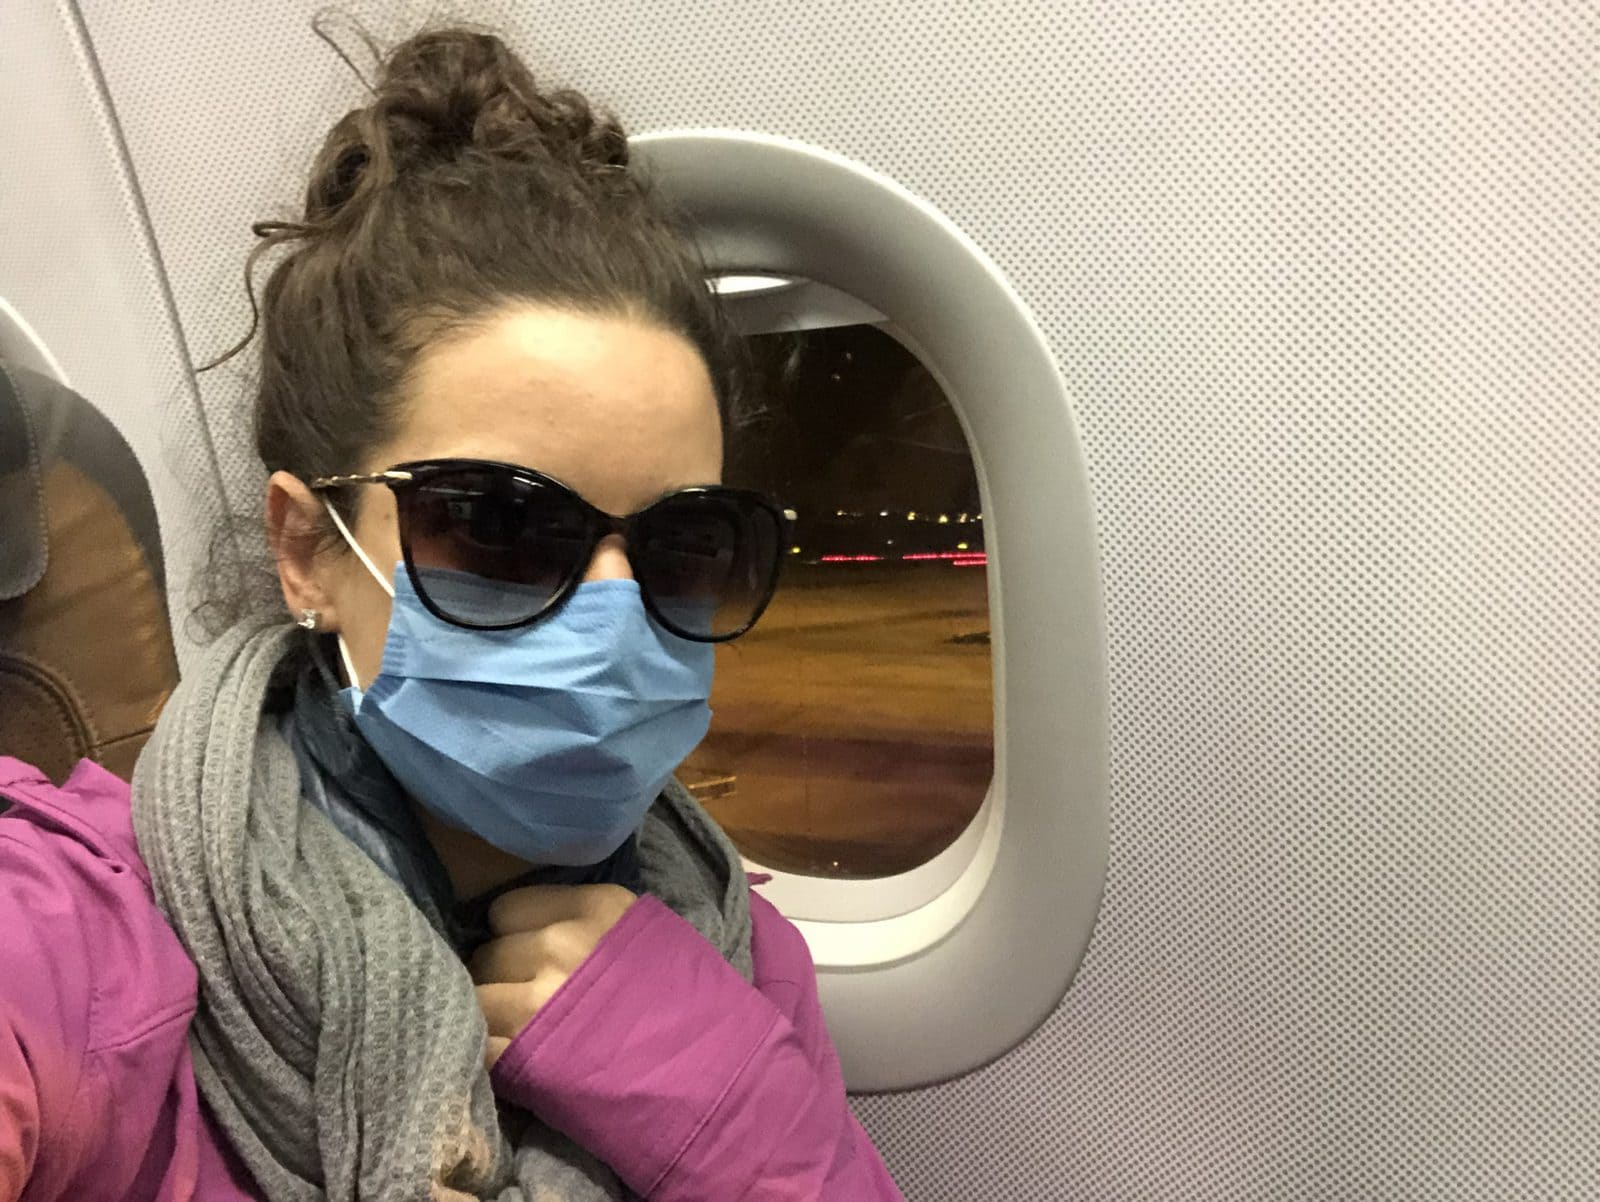 Me on a flight during the pandemic